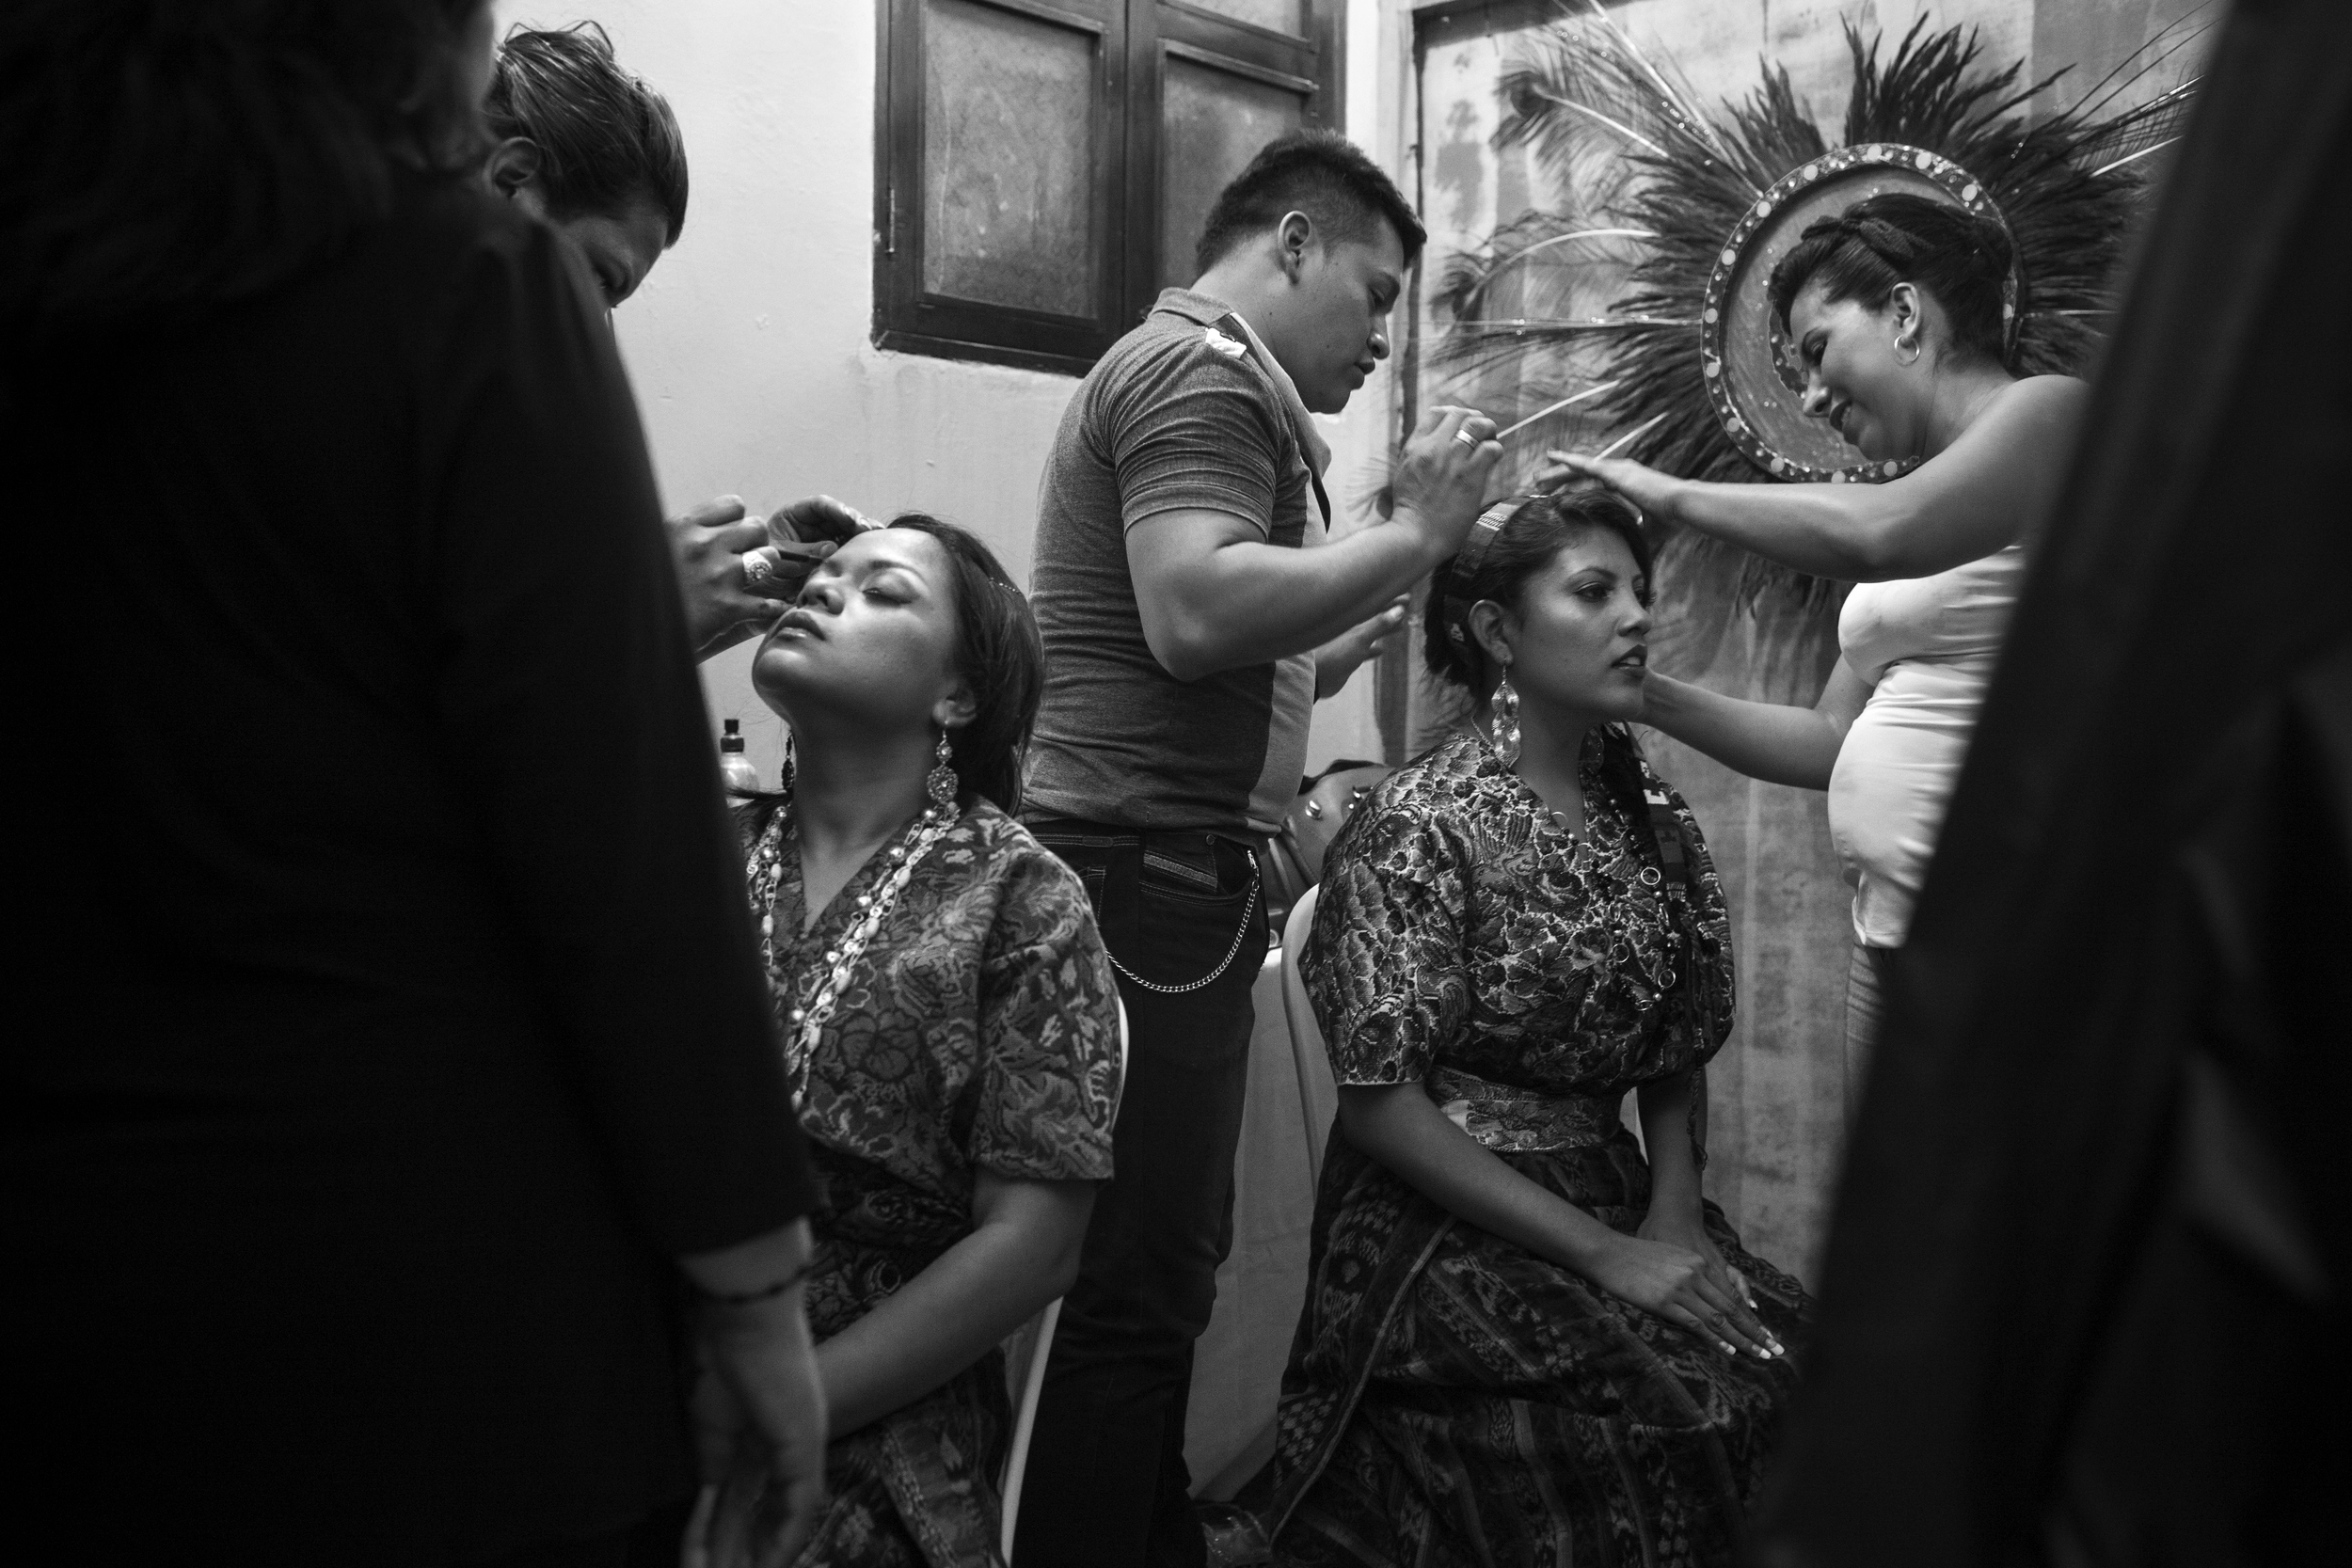 Karla López and Lilly Mazariegos have help with make up and outfits at the 2014 Miss Antigua beauty pageant. The winner will compete in the Miss Guatemala beauty pageant. Antigua, Guatemala.